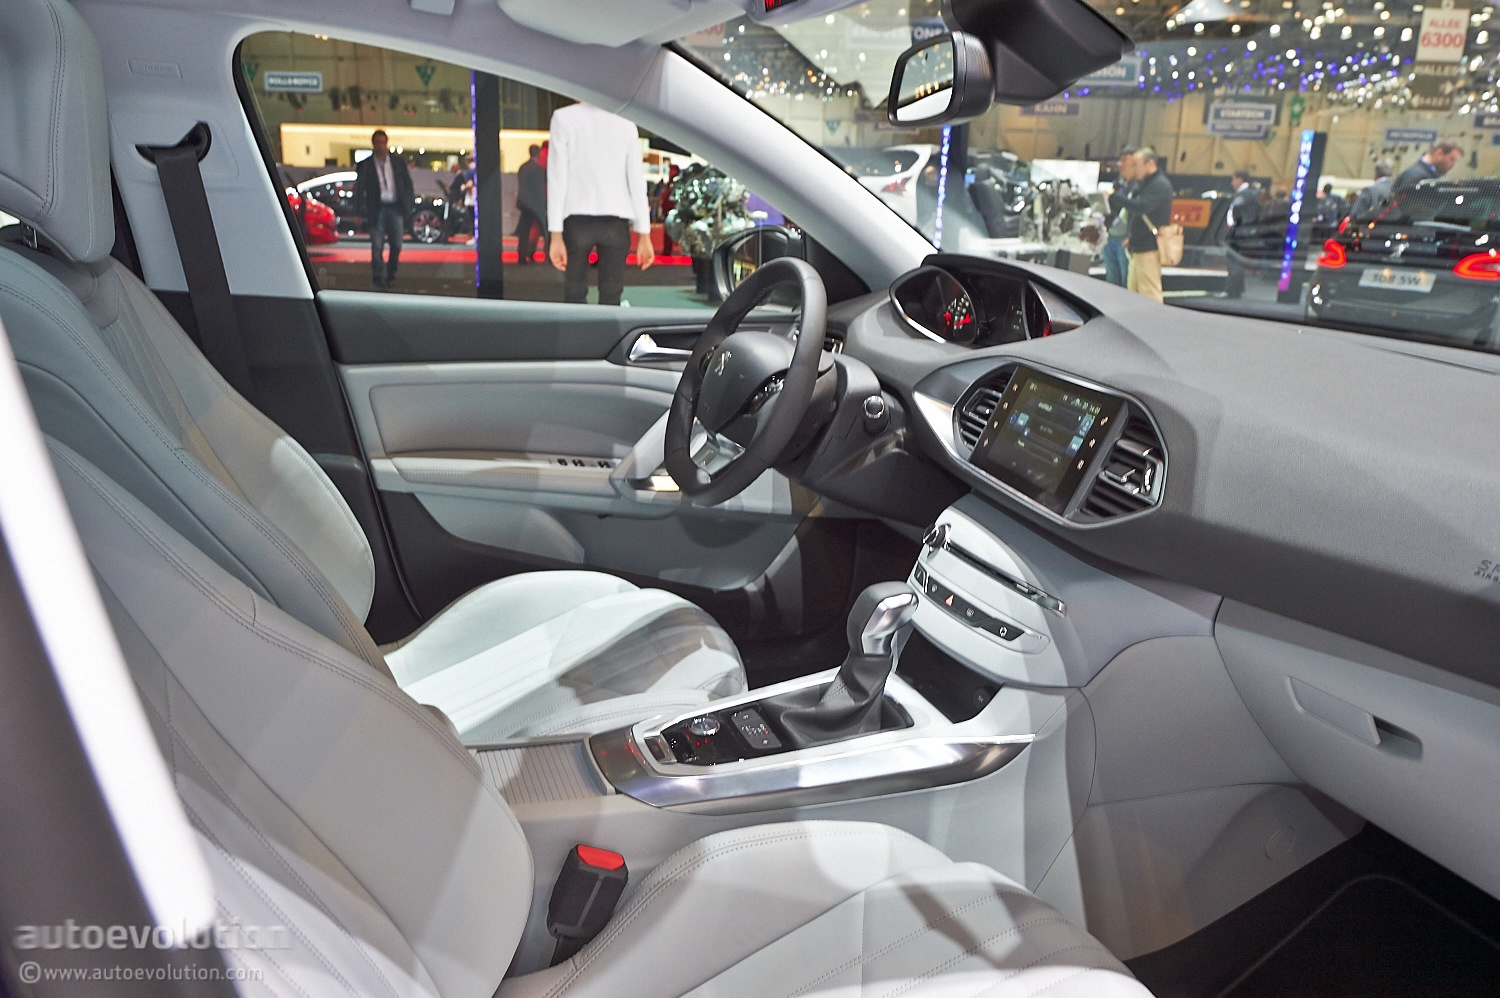 https://s1.cdn.autoevolution.com/images/news/gallery/man-copies-features-from-the-peugeot-308-sw-at-geneva-photo-gallery_10.jpg